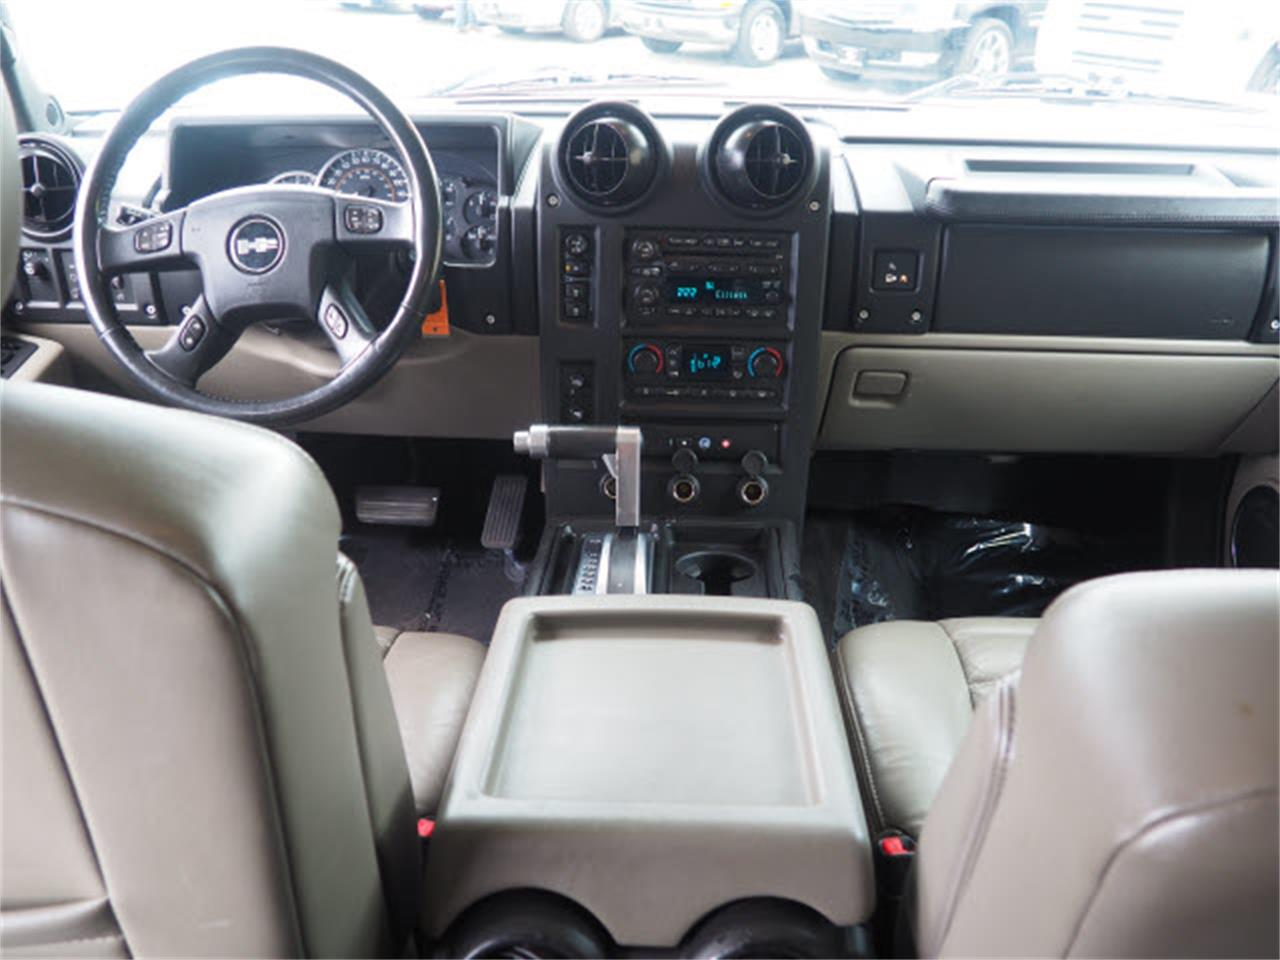 Large Picture of '05 Hummer H2 located in Washington - $18,990.00 Offered by Sabeti Motors - QVOC